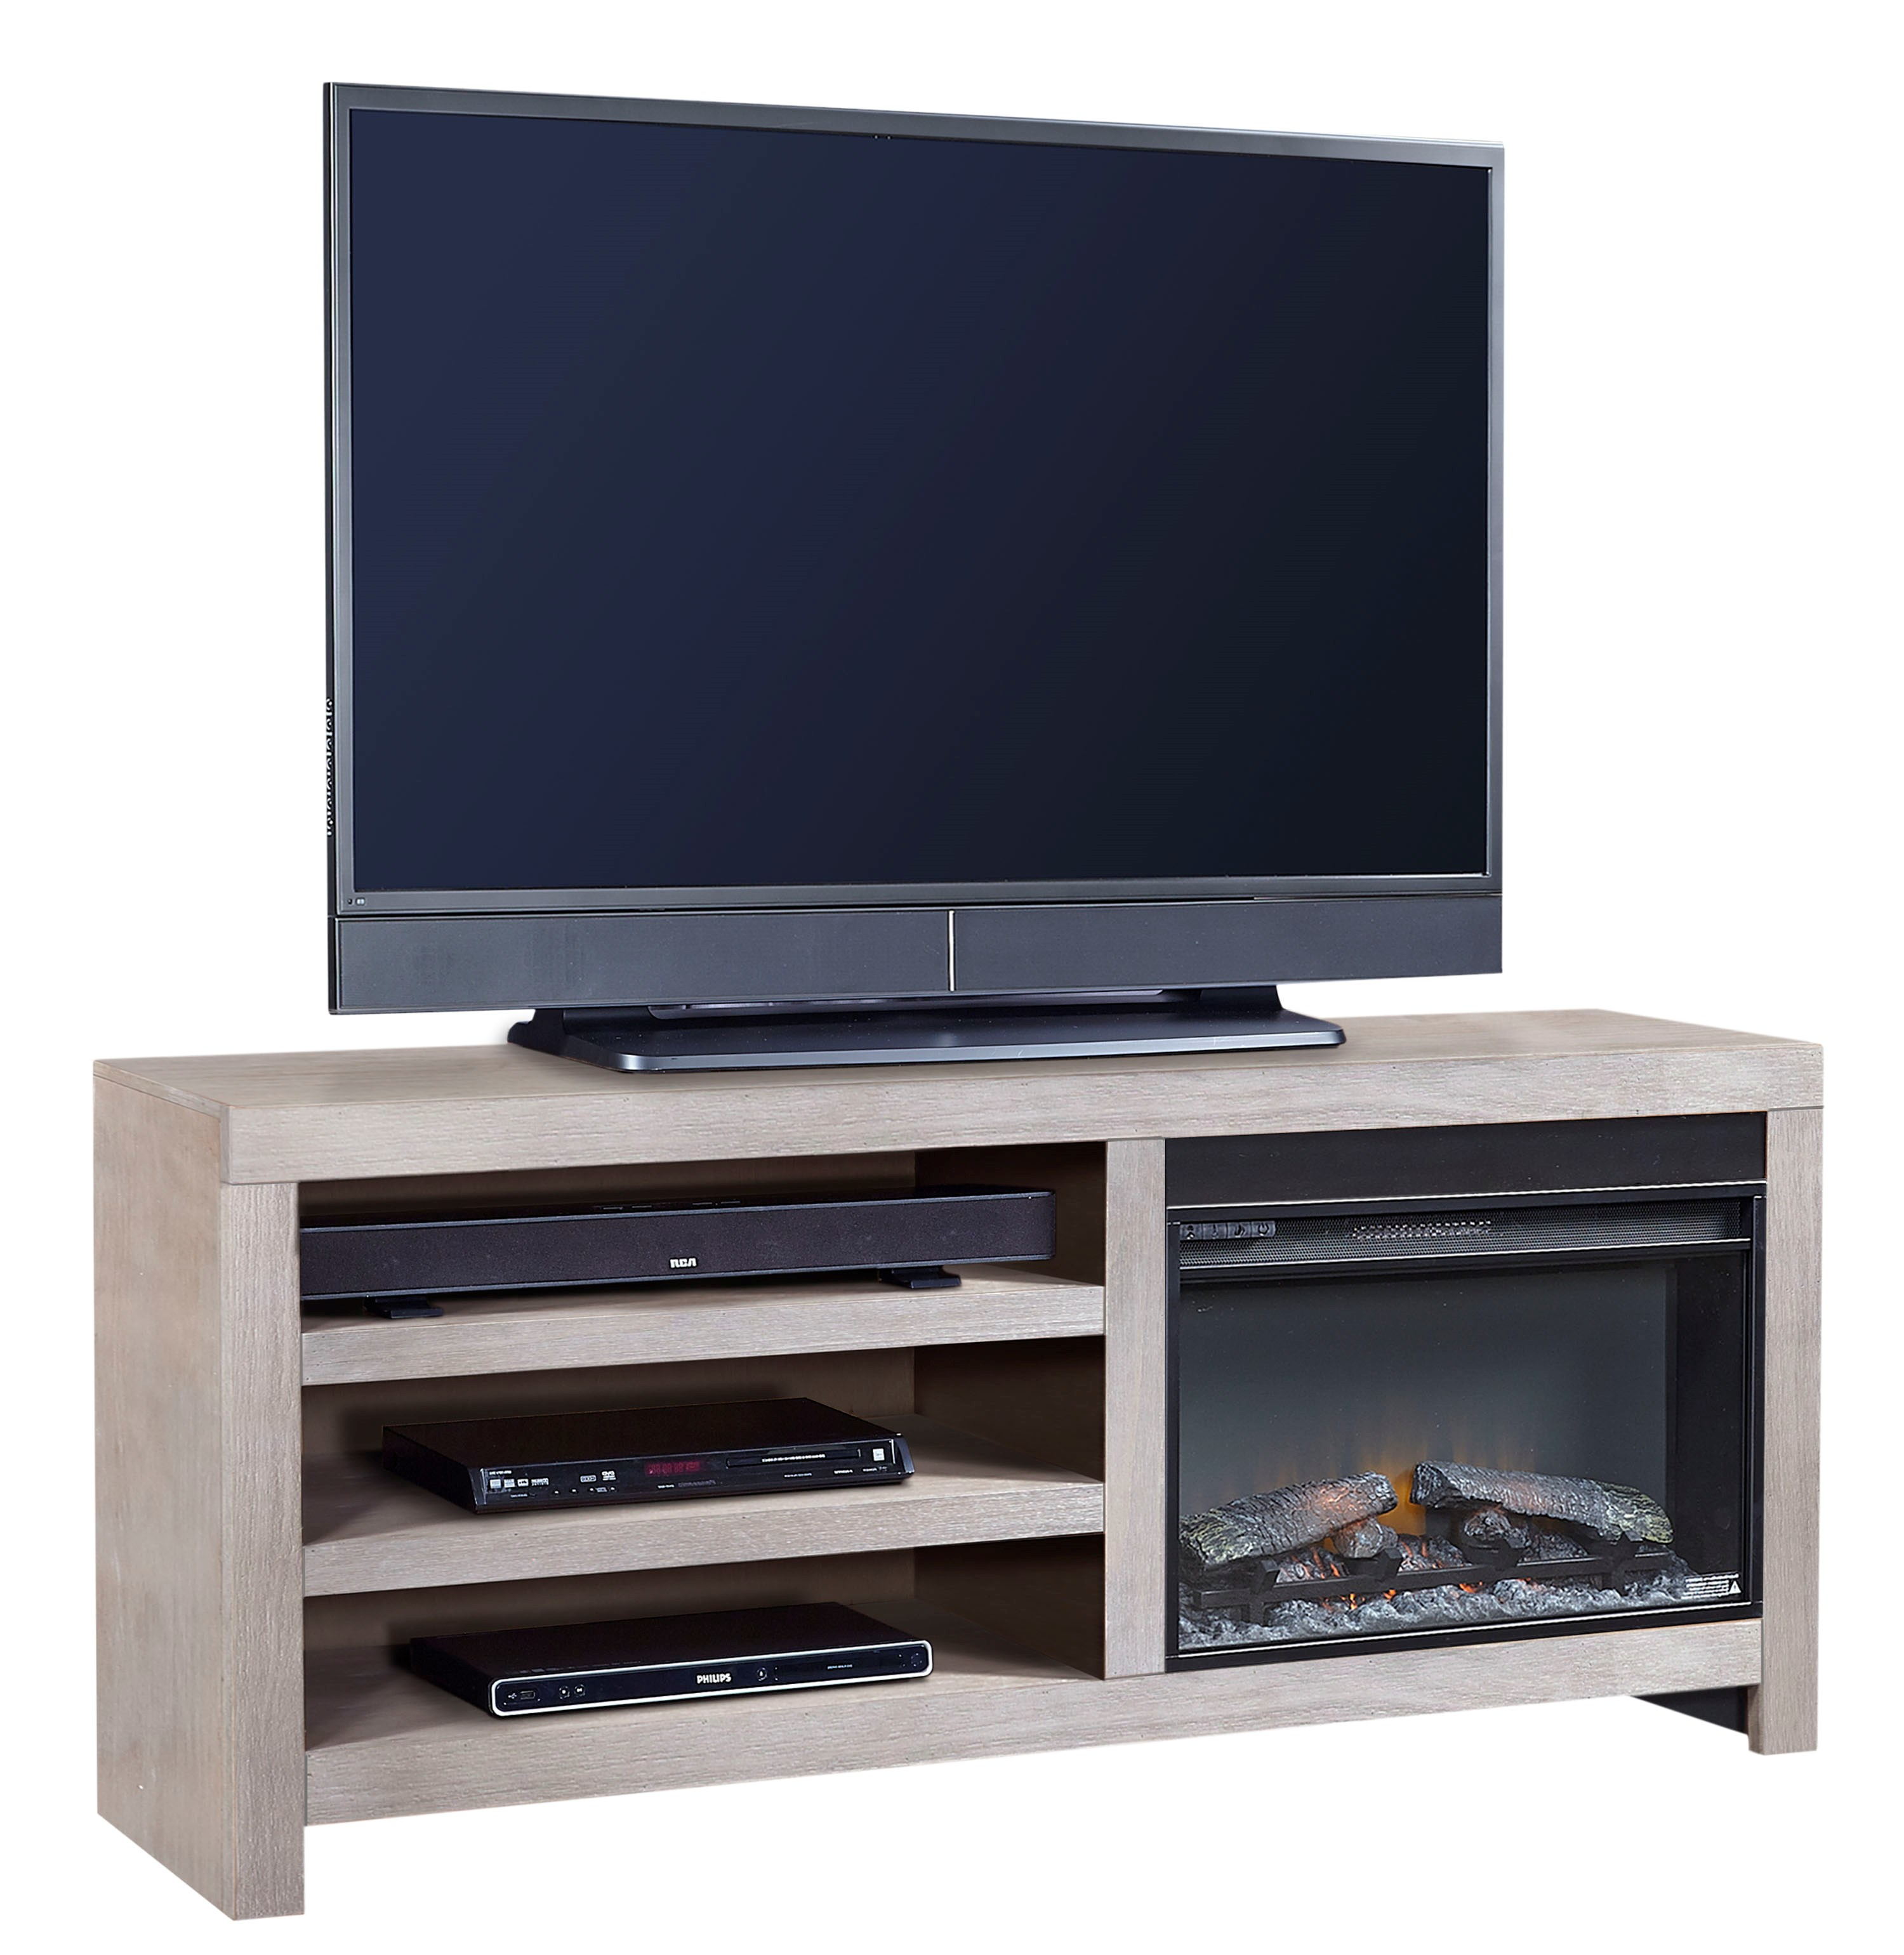 Aspenhome Contemporary Driftwood 65 Inch Fireplace Console